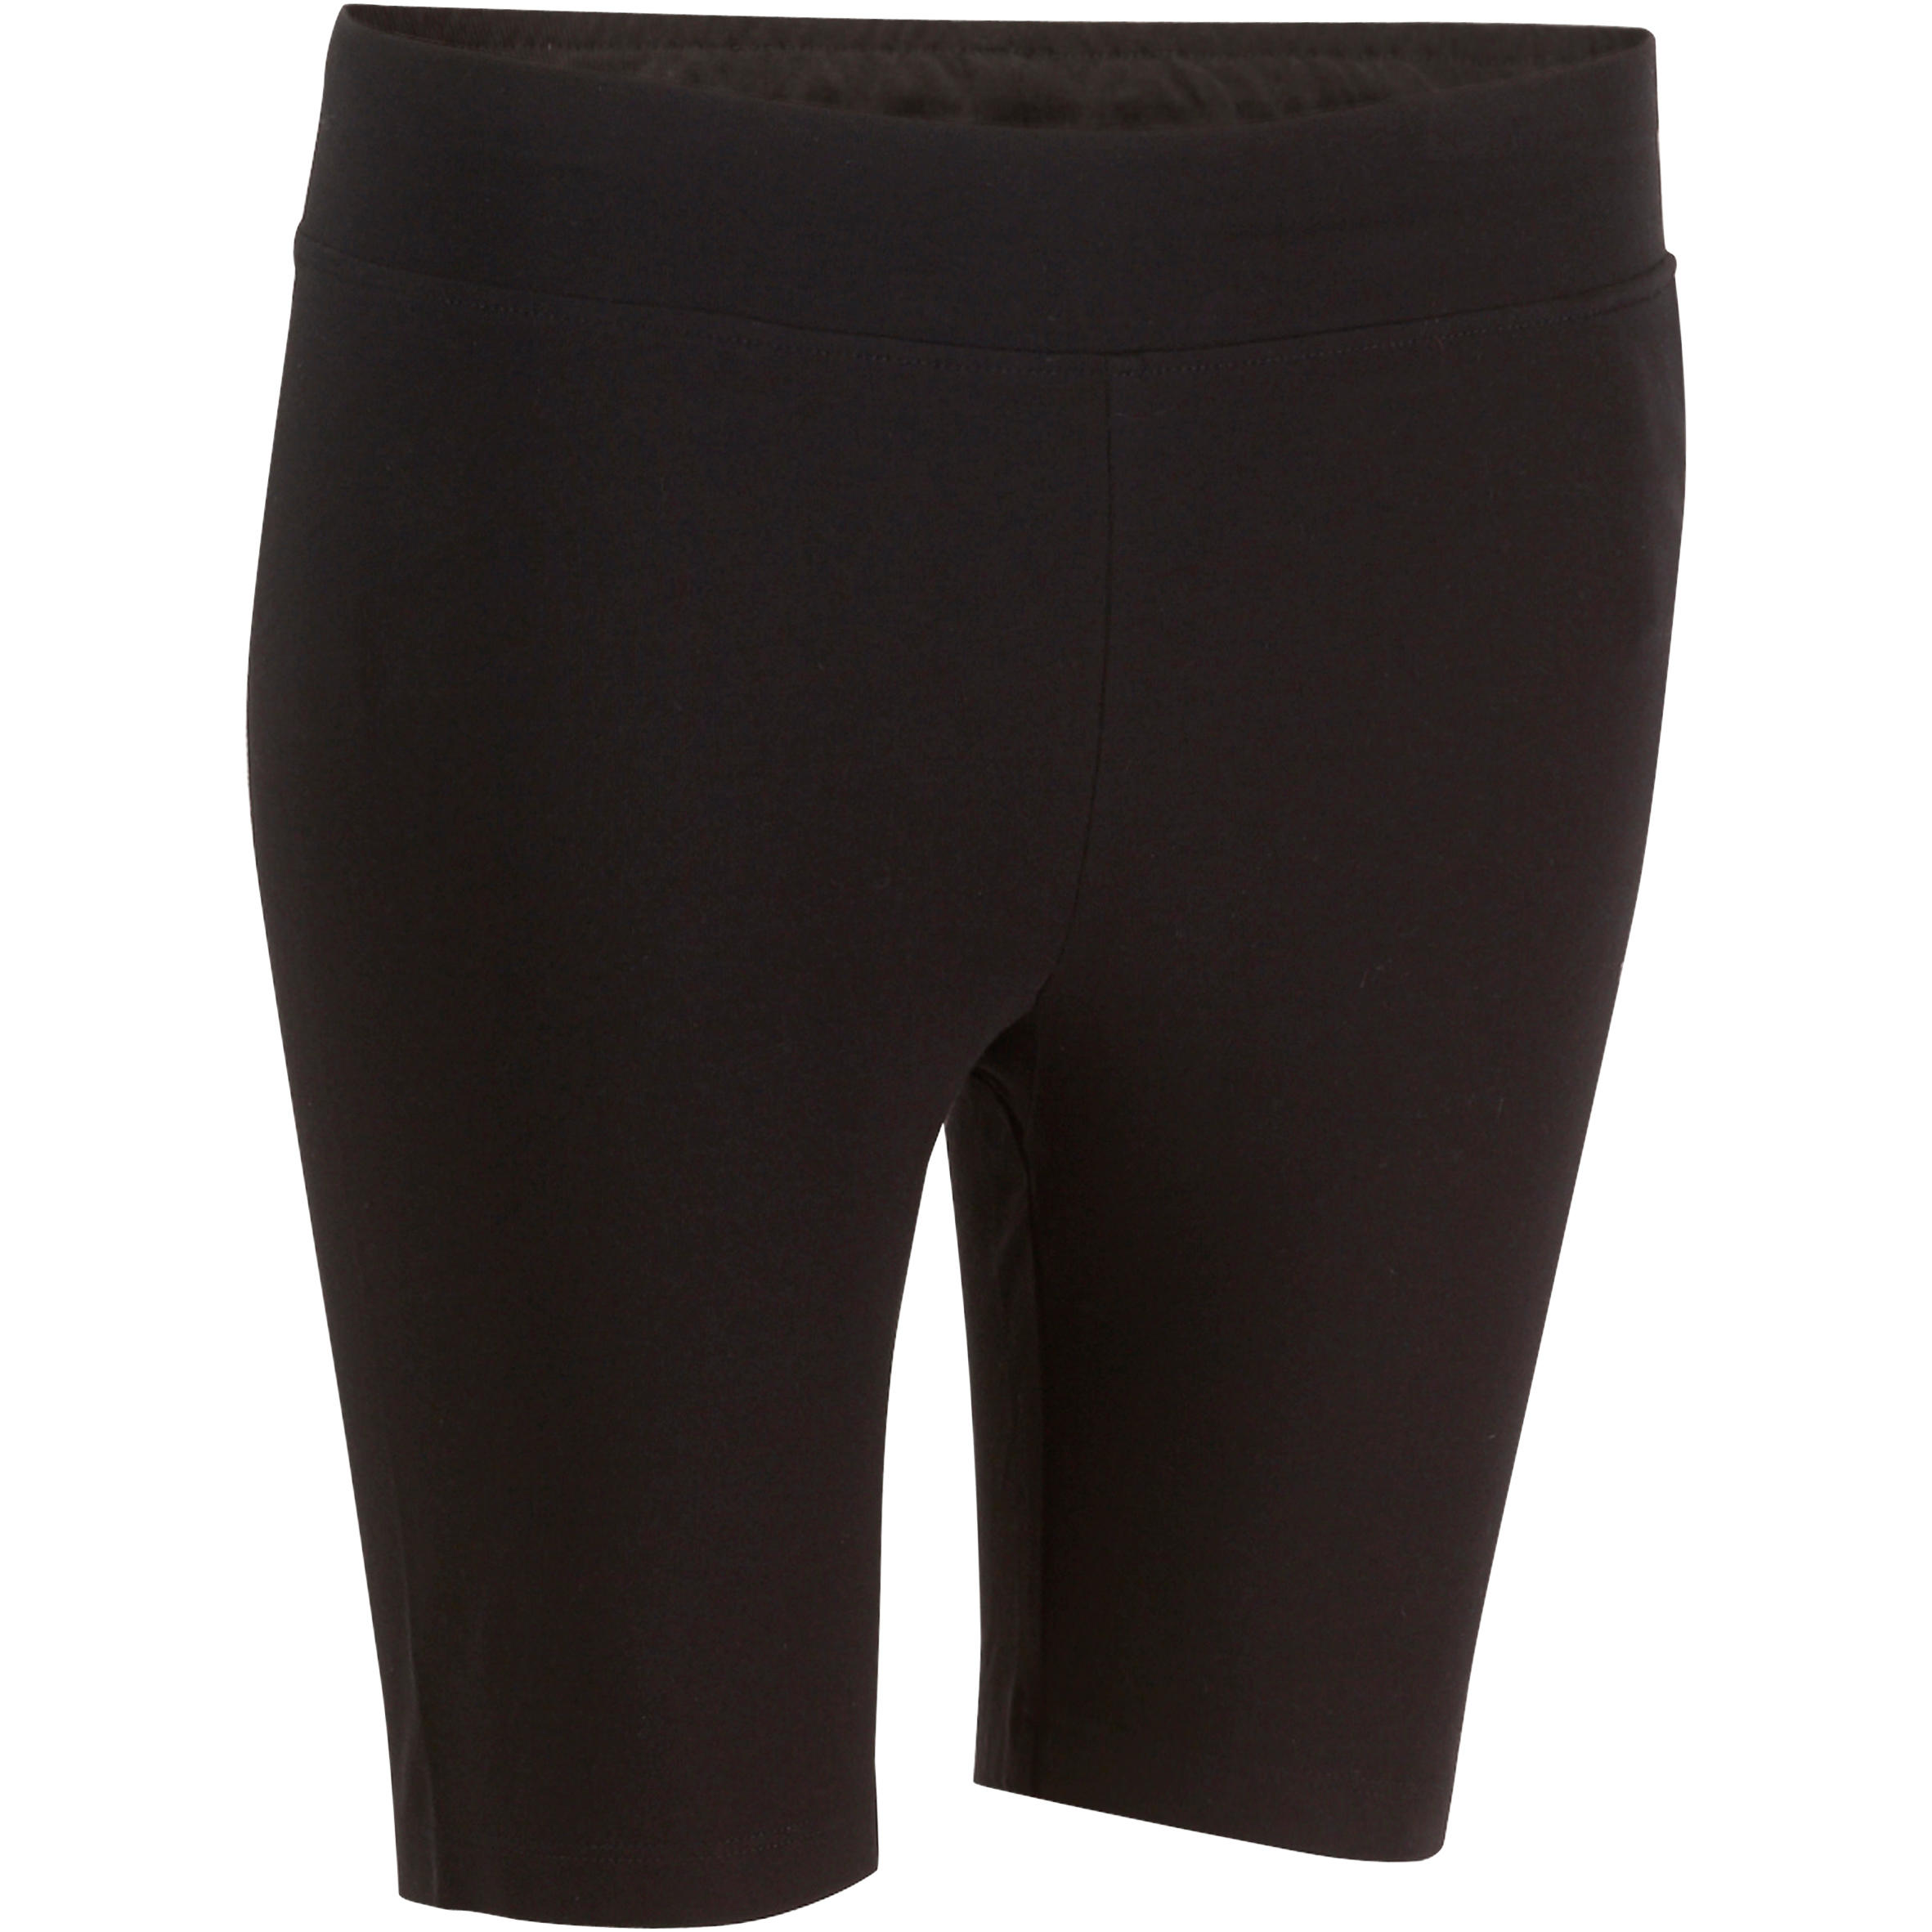 FIT+ 500 Women's Slim-Fit Stretching Cycling Shorts - Black